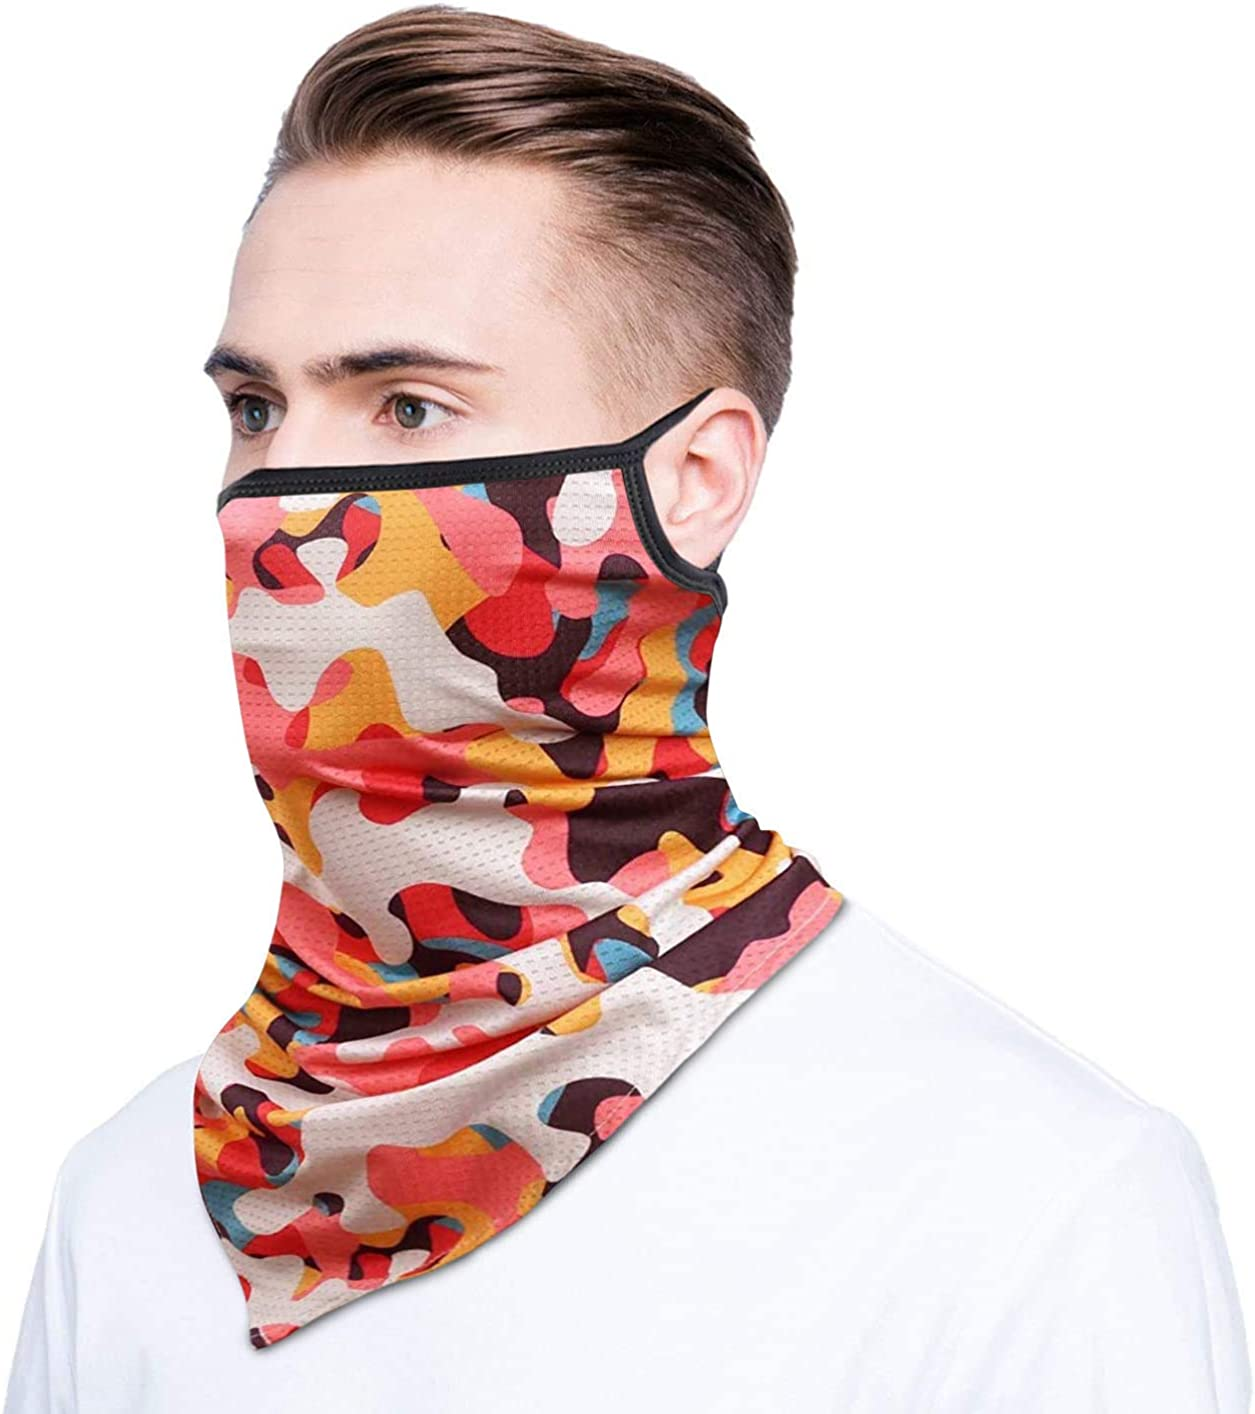 Arawell Neck Gaiter Face Cover UV Protection Dust Wind Bandana Balaclava Headwear for Outdoors with Ear Loops